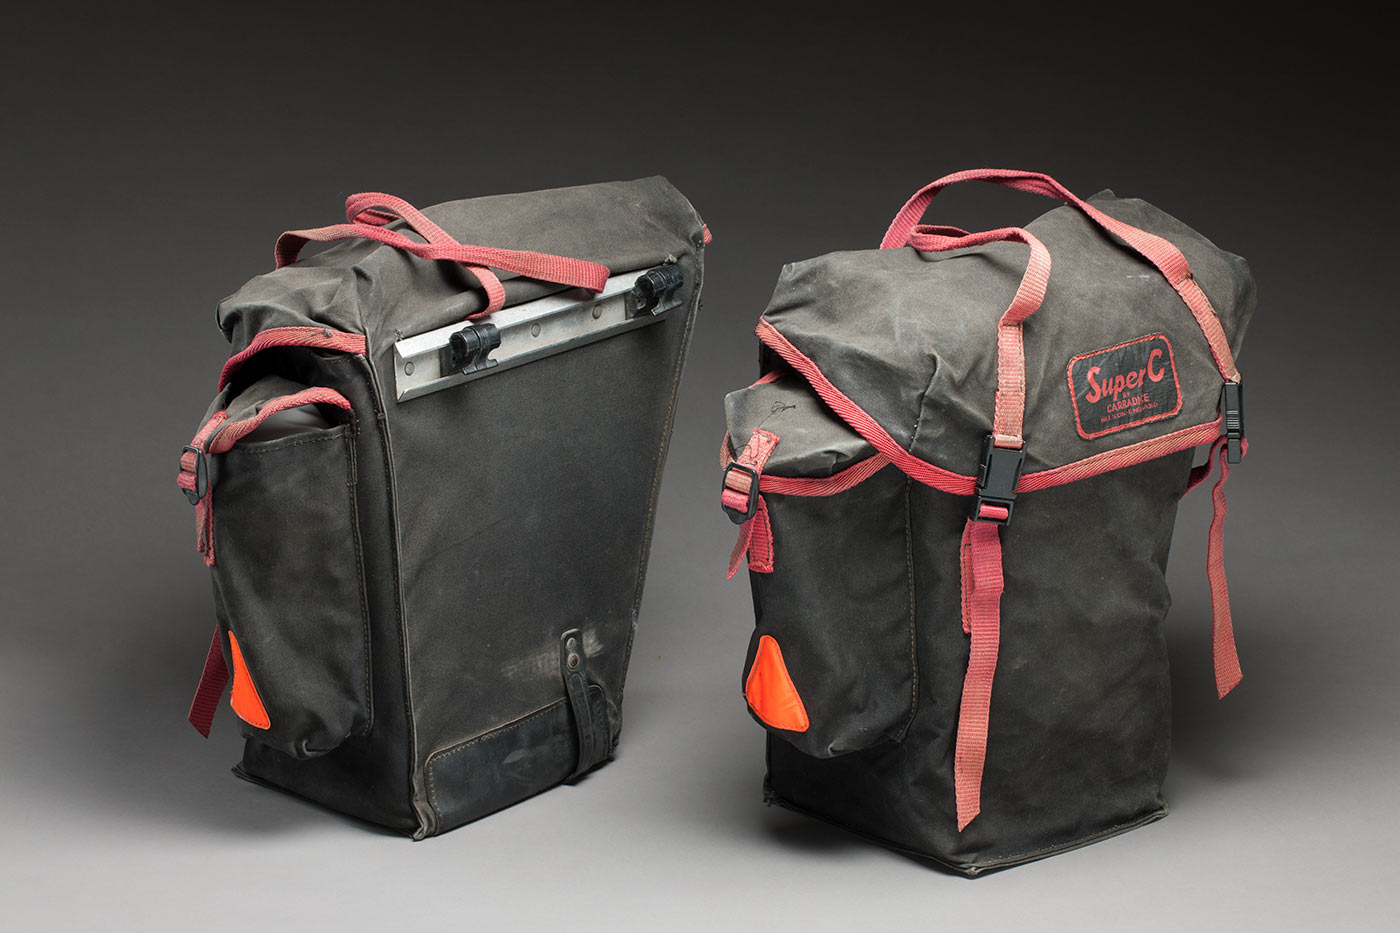 Two Carradice cycling panniers. - click to view larger image